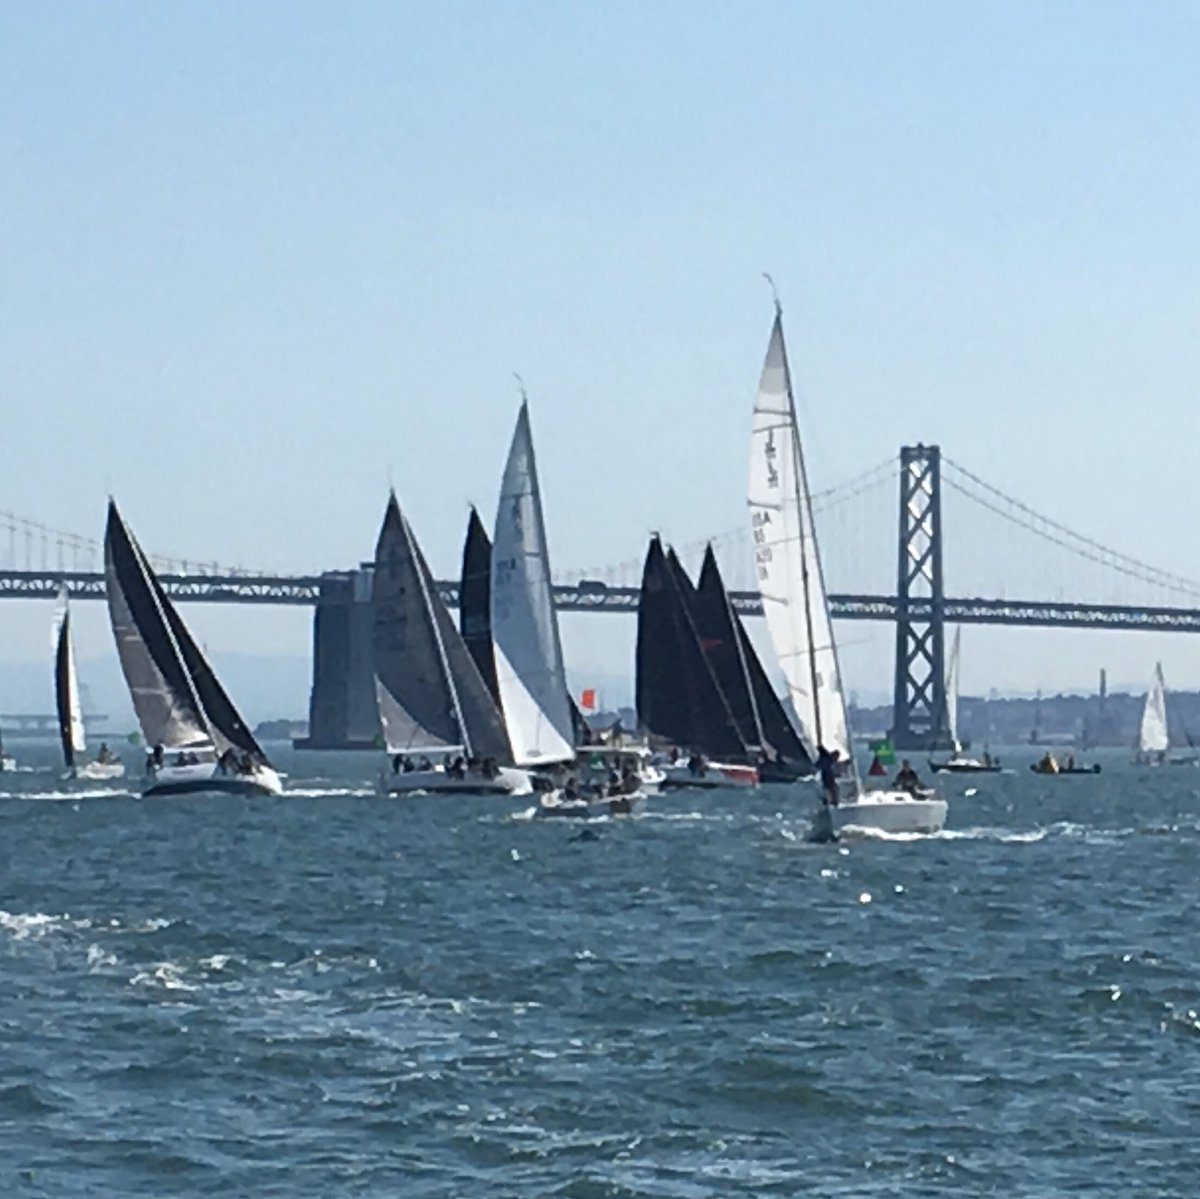 You are welcome and thank you for supporting our #SailGreen efforts! #RolexBigBoatSeries #RolexBBS